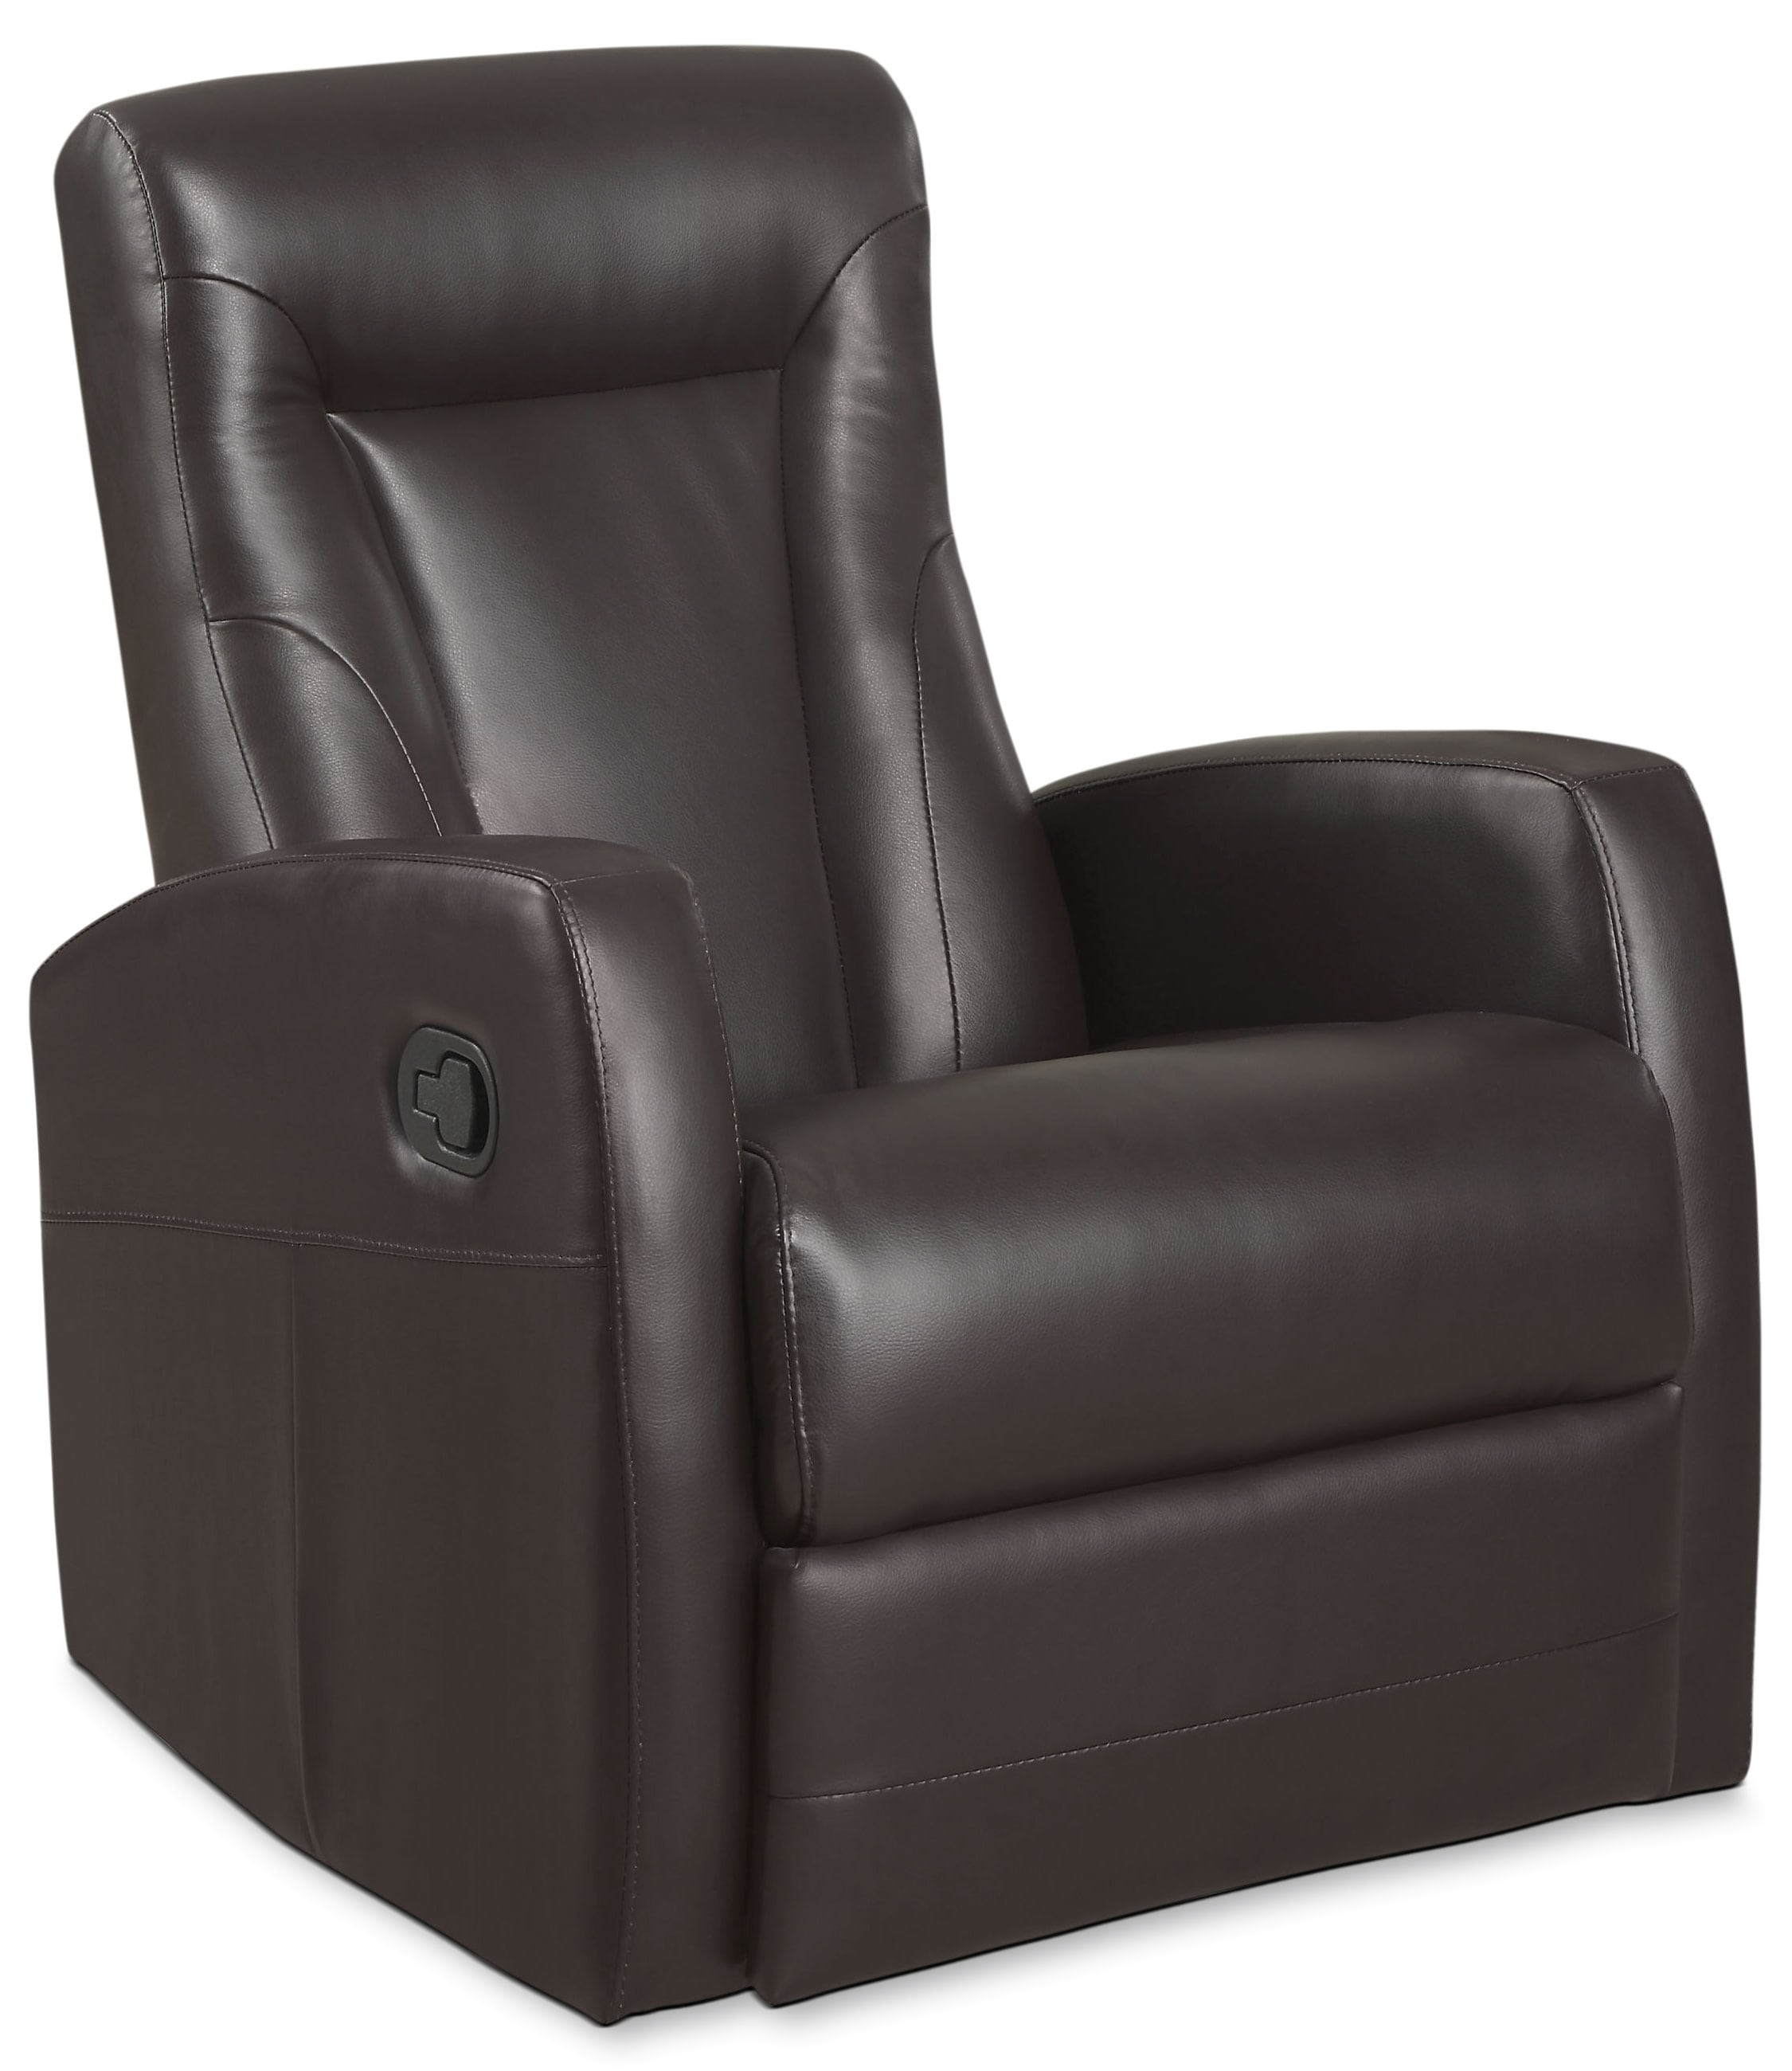 Molly bonded leather swivel recliner brown the brick - Swivel recliner chairs for living room ...